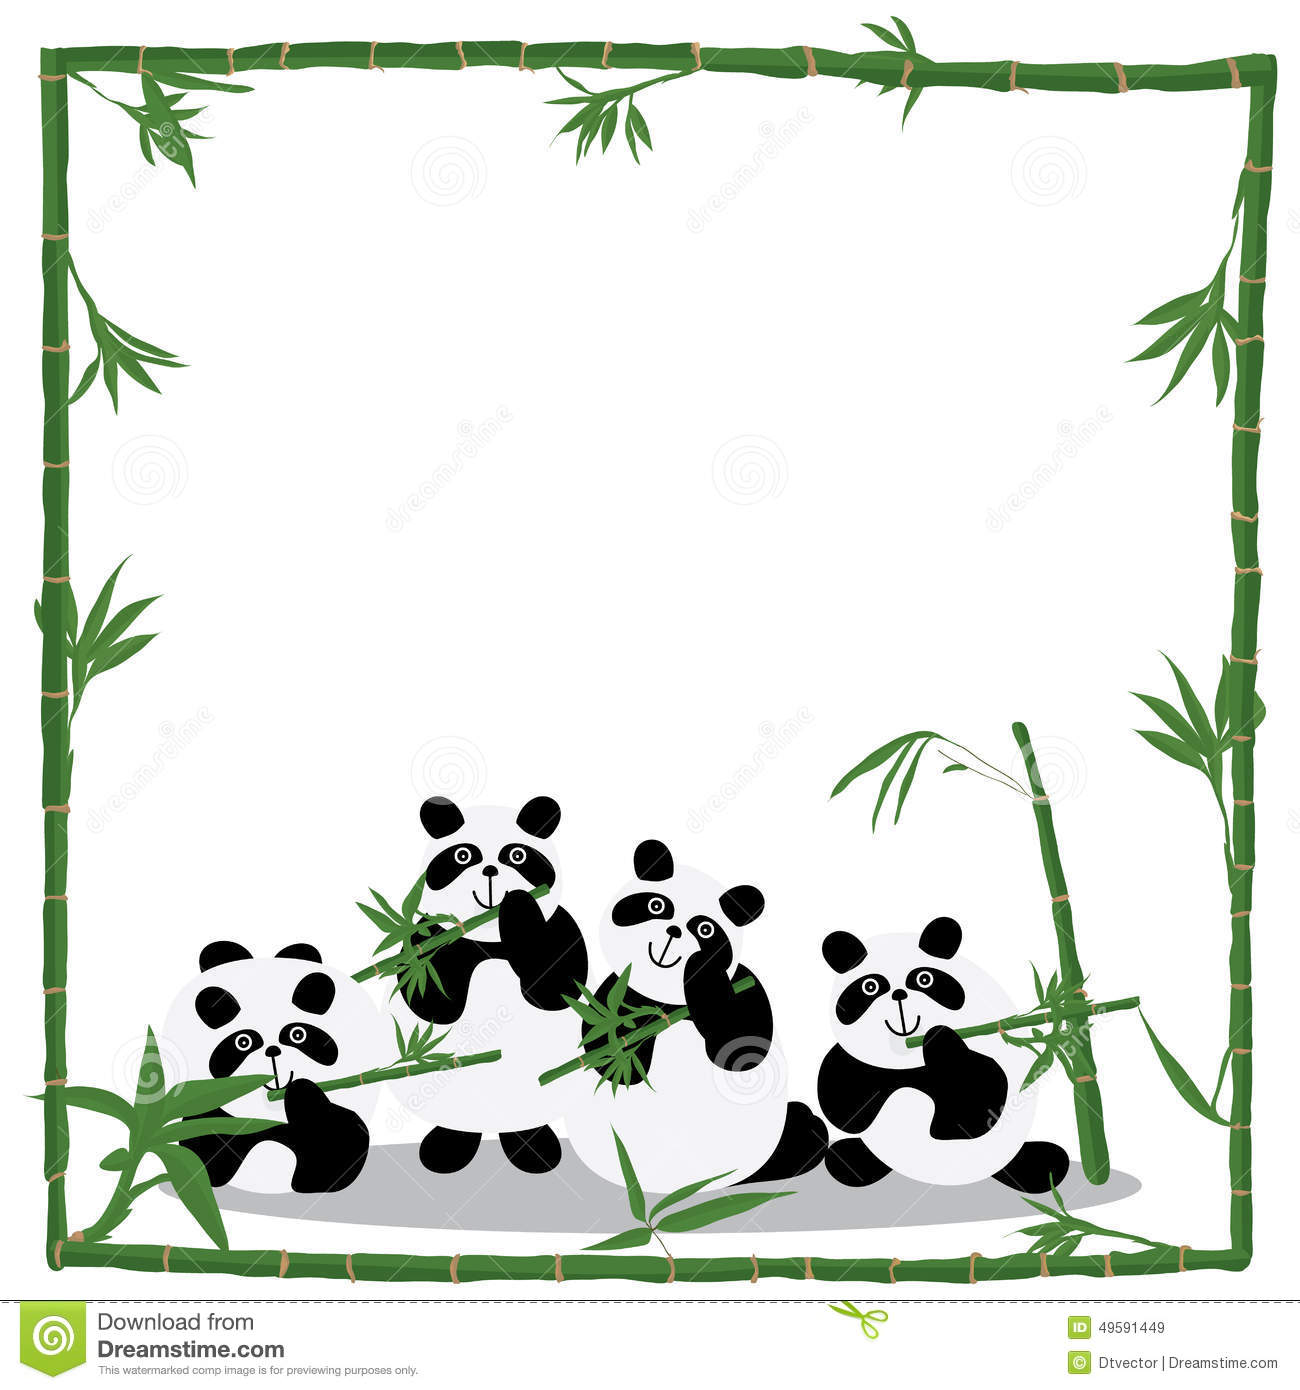 Illustration family panda love bamboo abstract panda inside bamboo ...